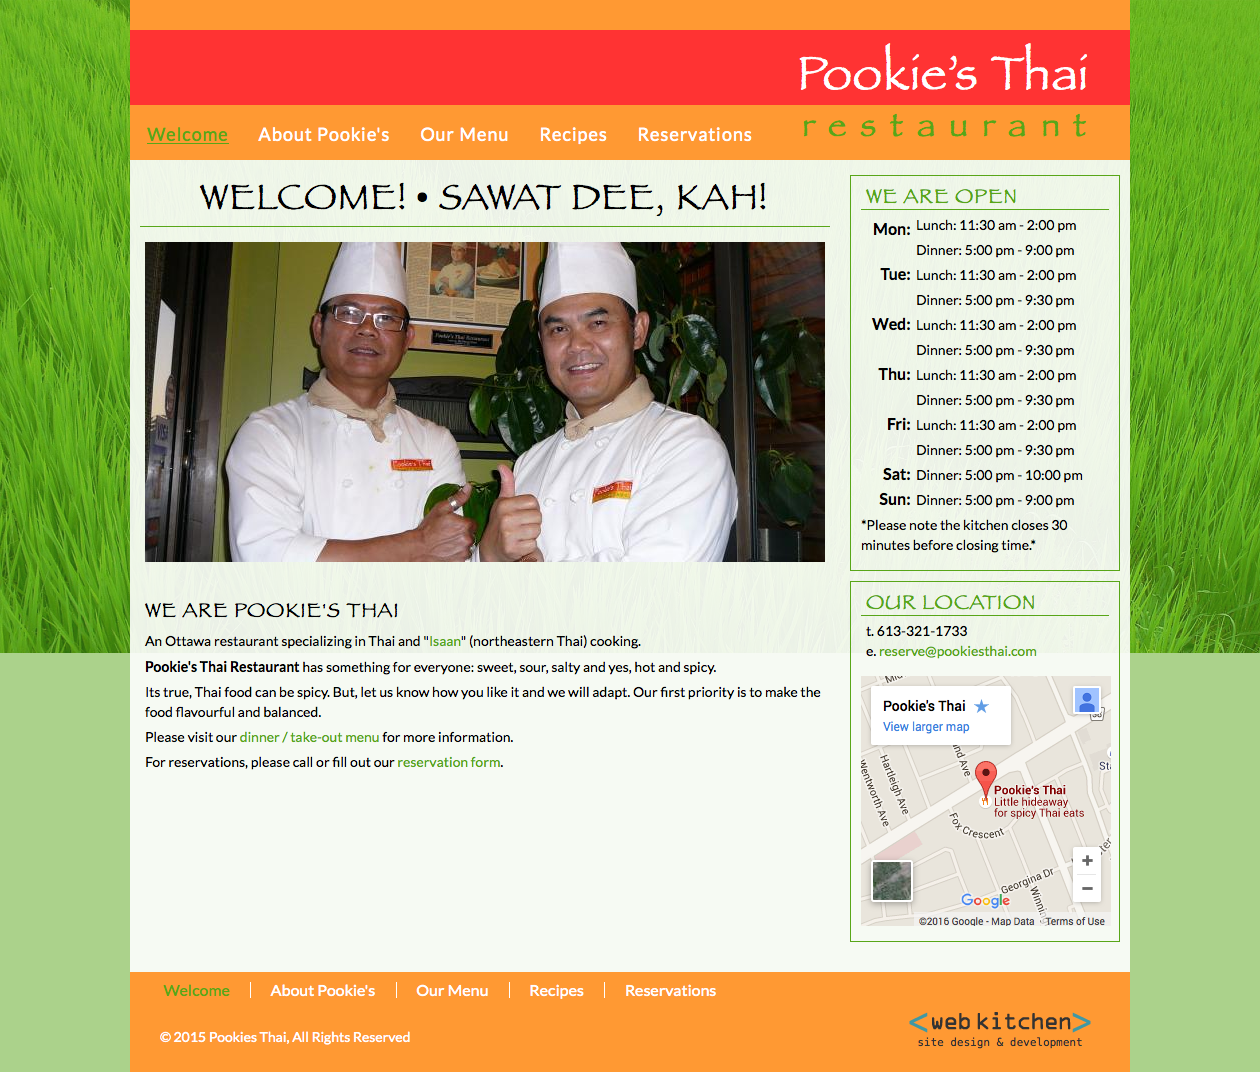 Pookie's Thai